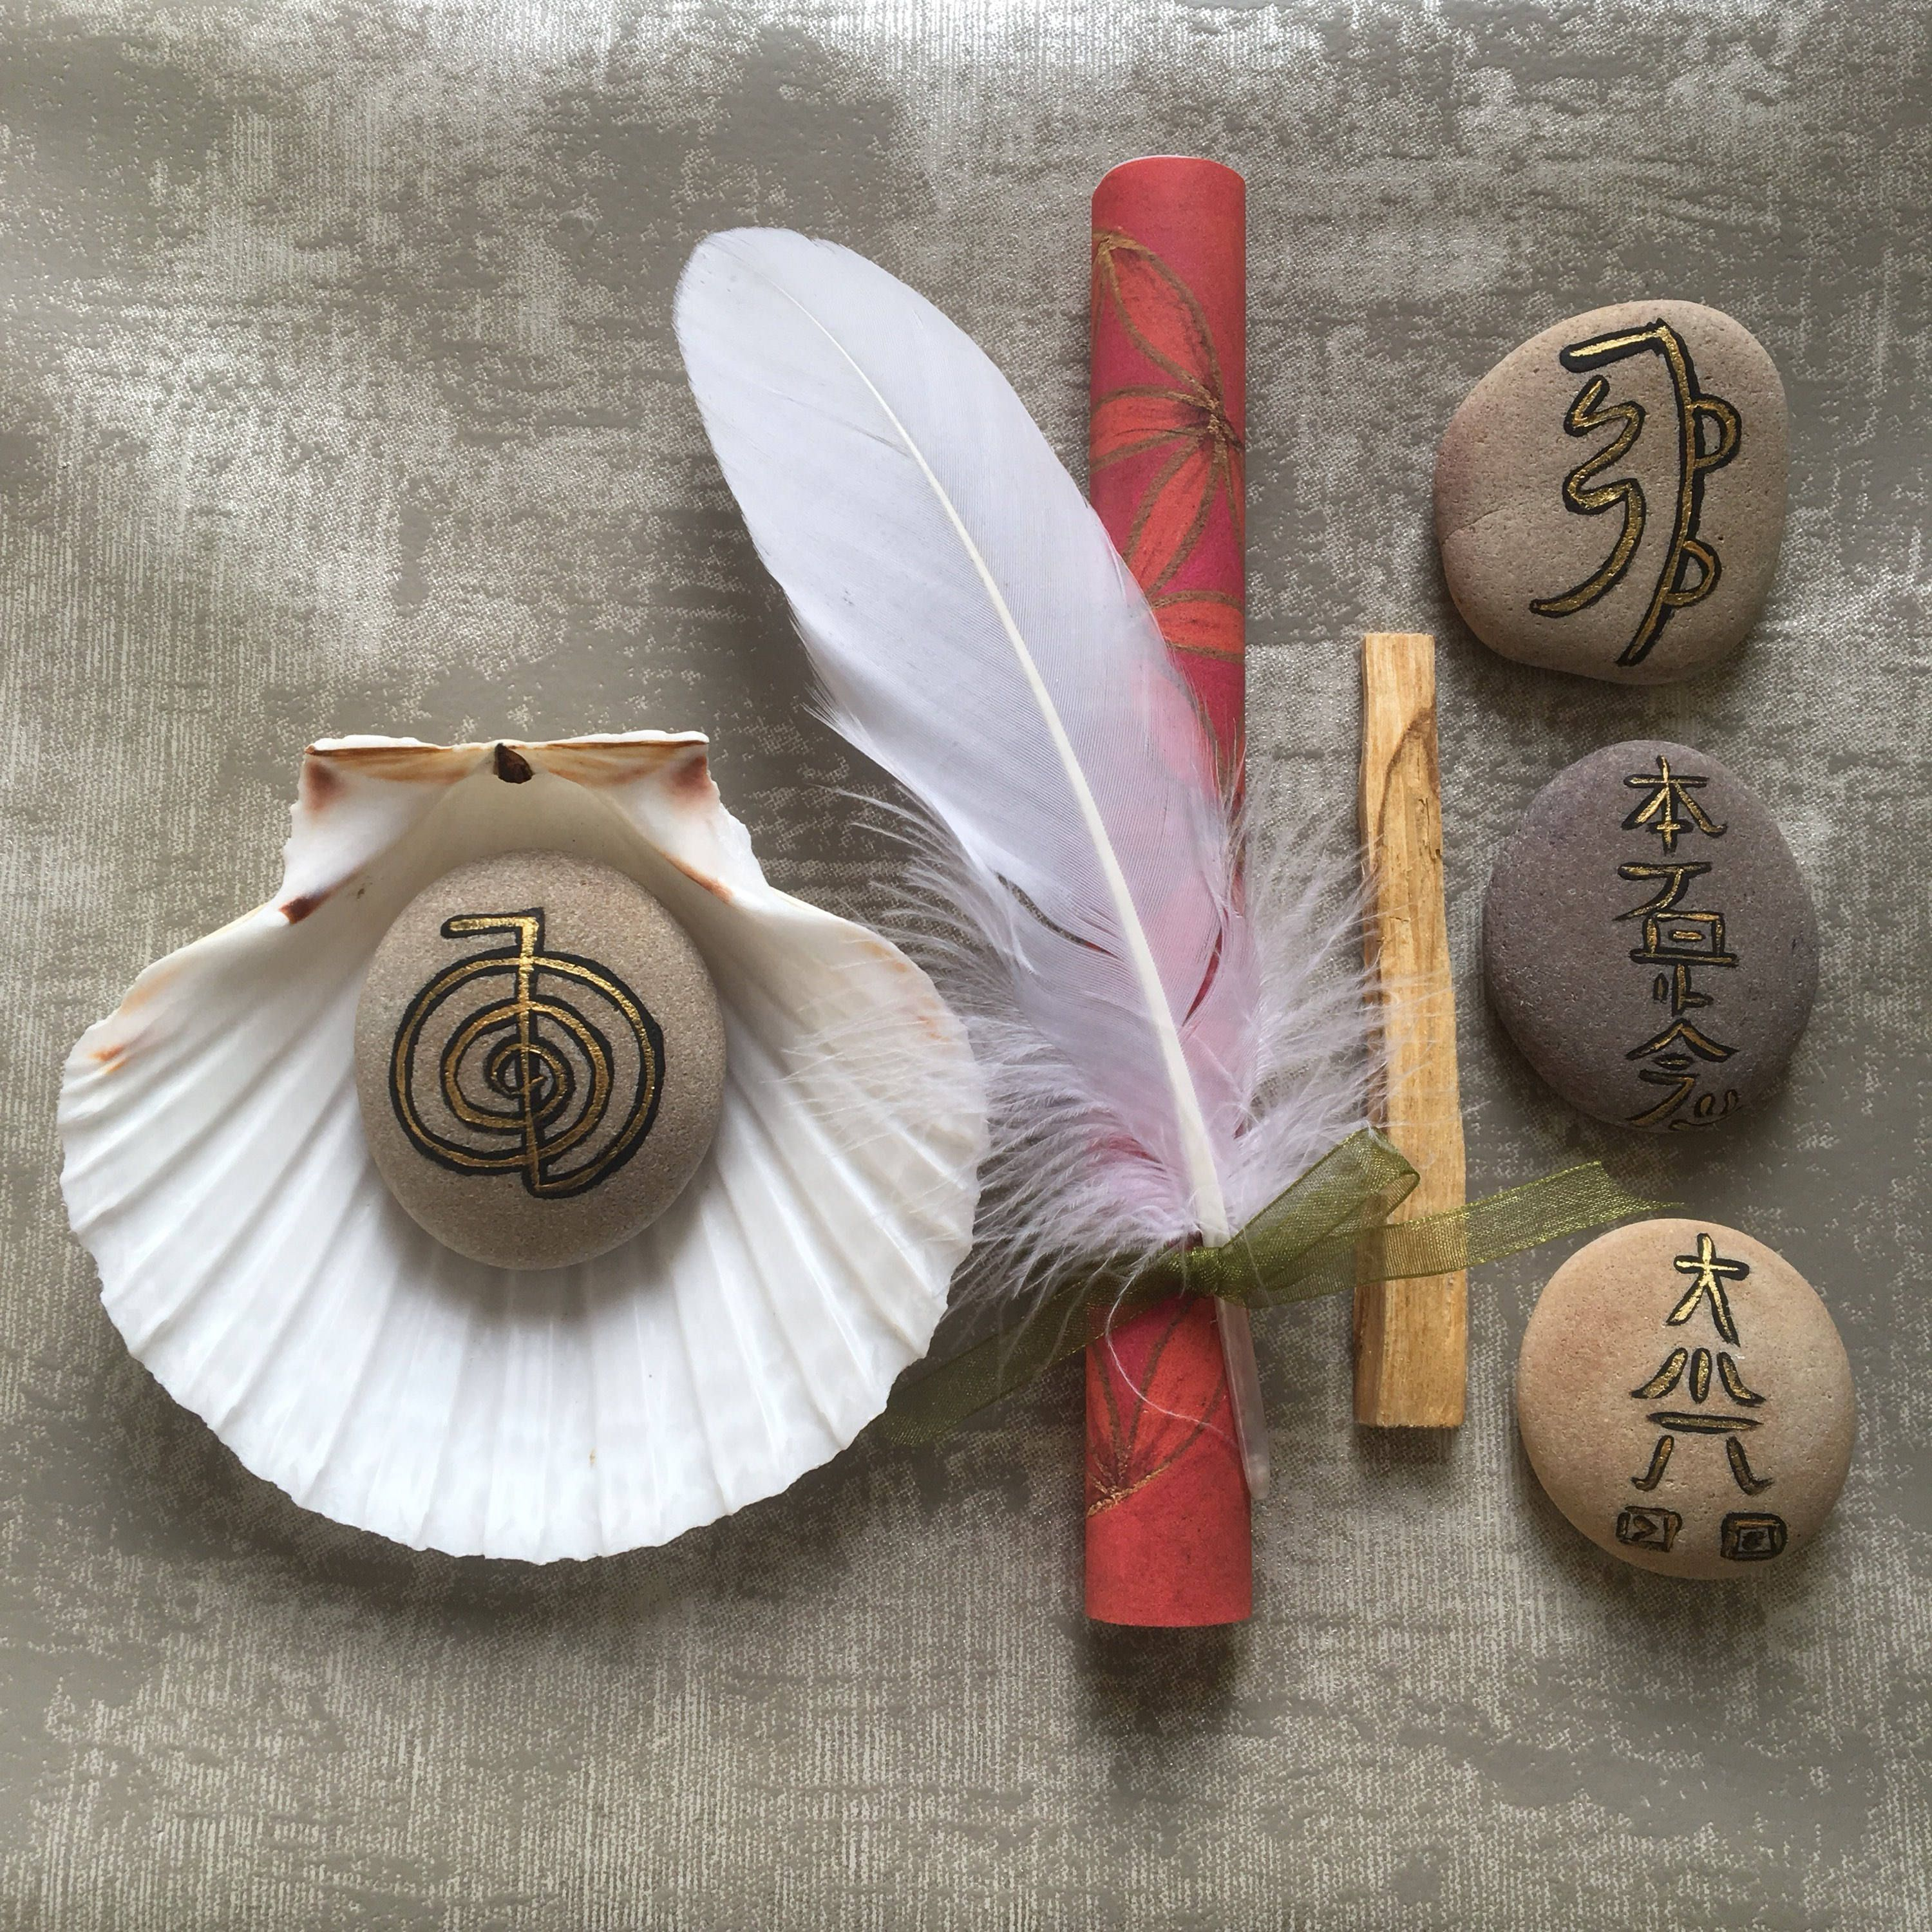 This reiki healers kit is intended only for those who are attuned this reiki healers kit is intended only for those who are attuned to reiki to use the symbol stones and the smudge herbs to cleanse your environment and buycottarizona Images